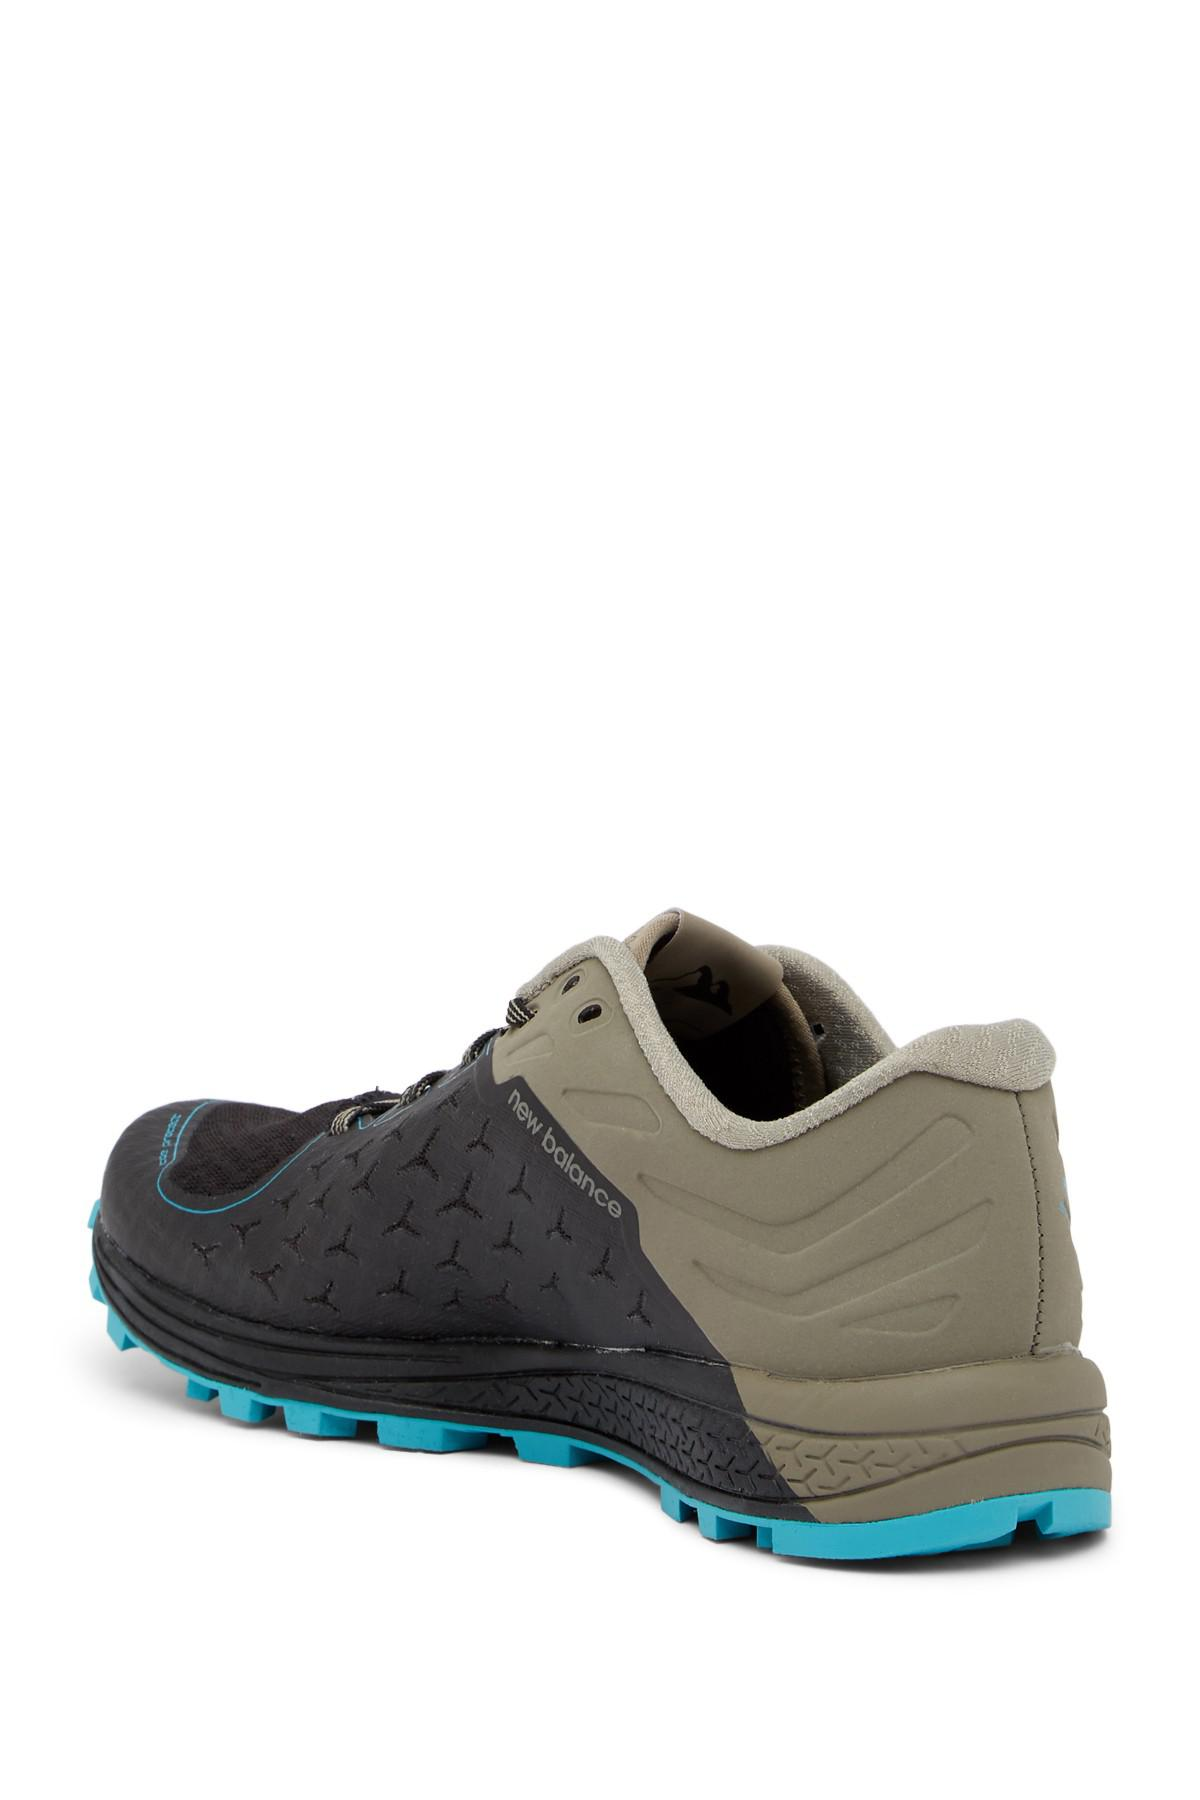 New Balance Multicolor Vazee Summit Trail V2 Athletic Sneaker